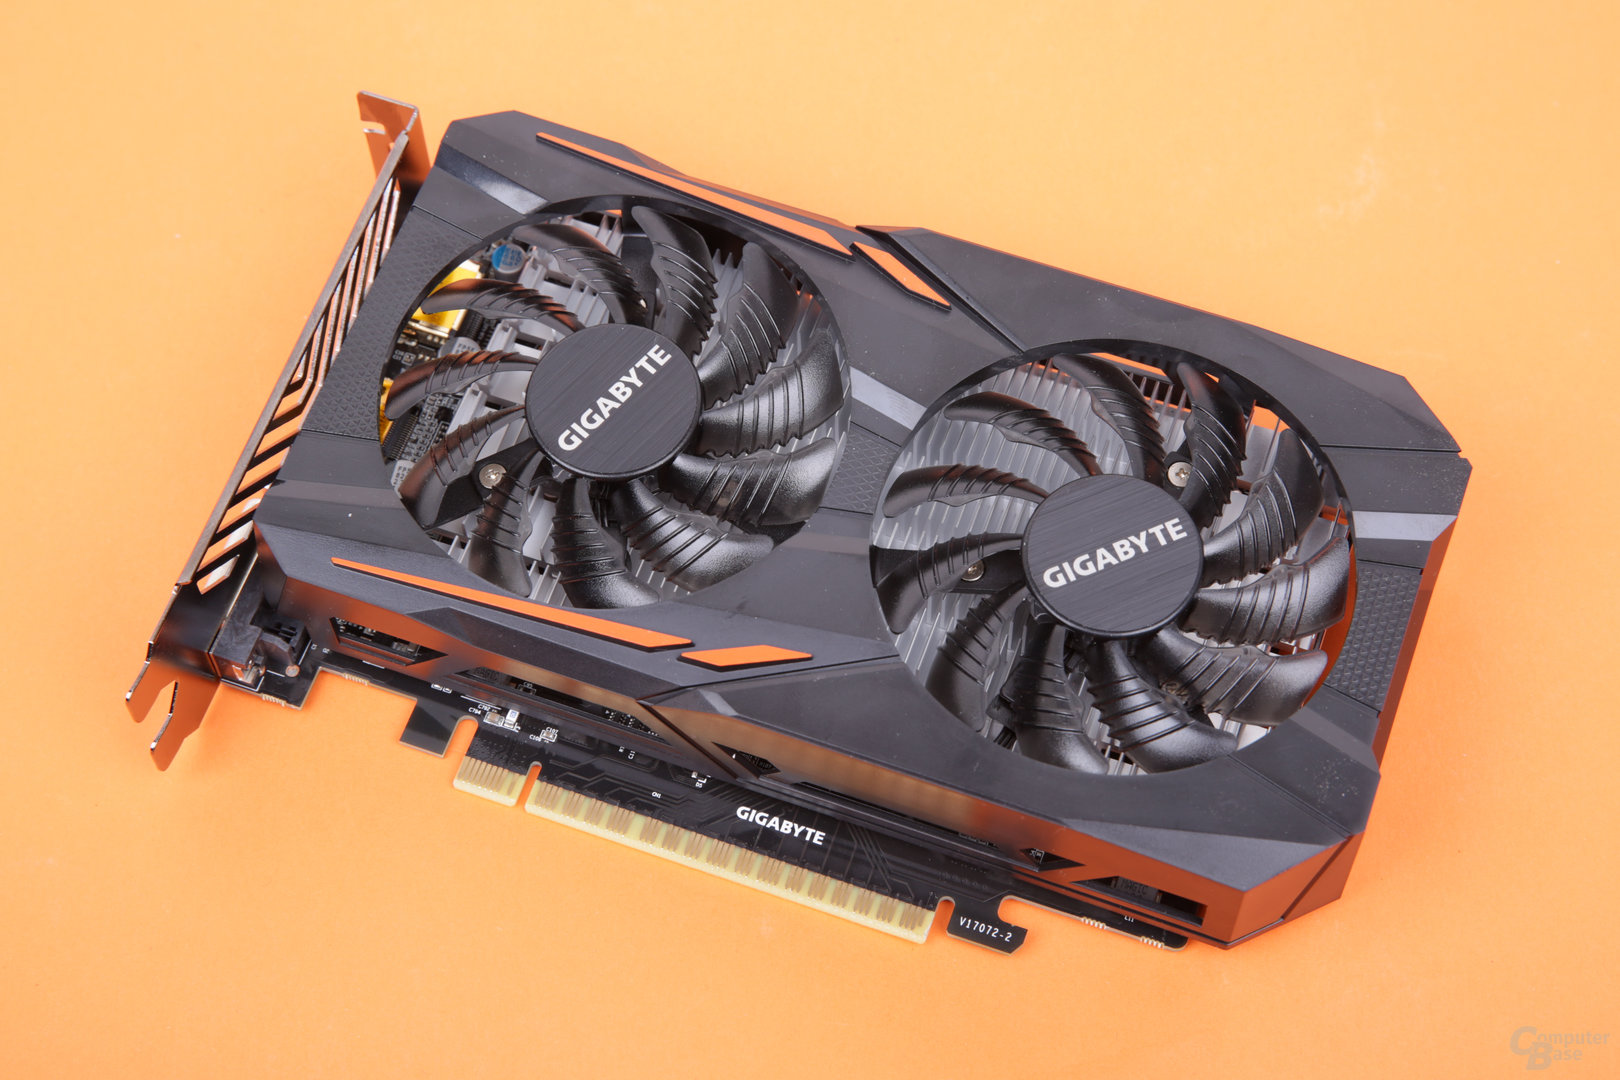 Gigabyte GeForce GTX 1050 3GB Windforce im Test